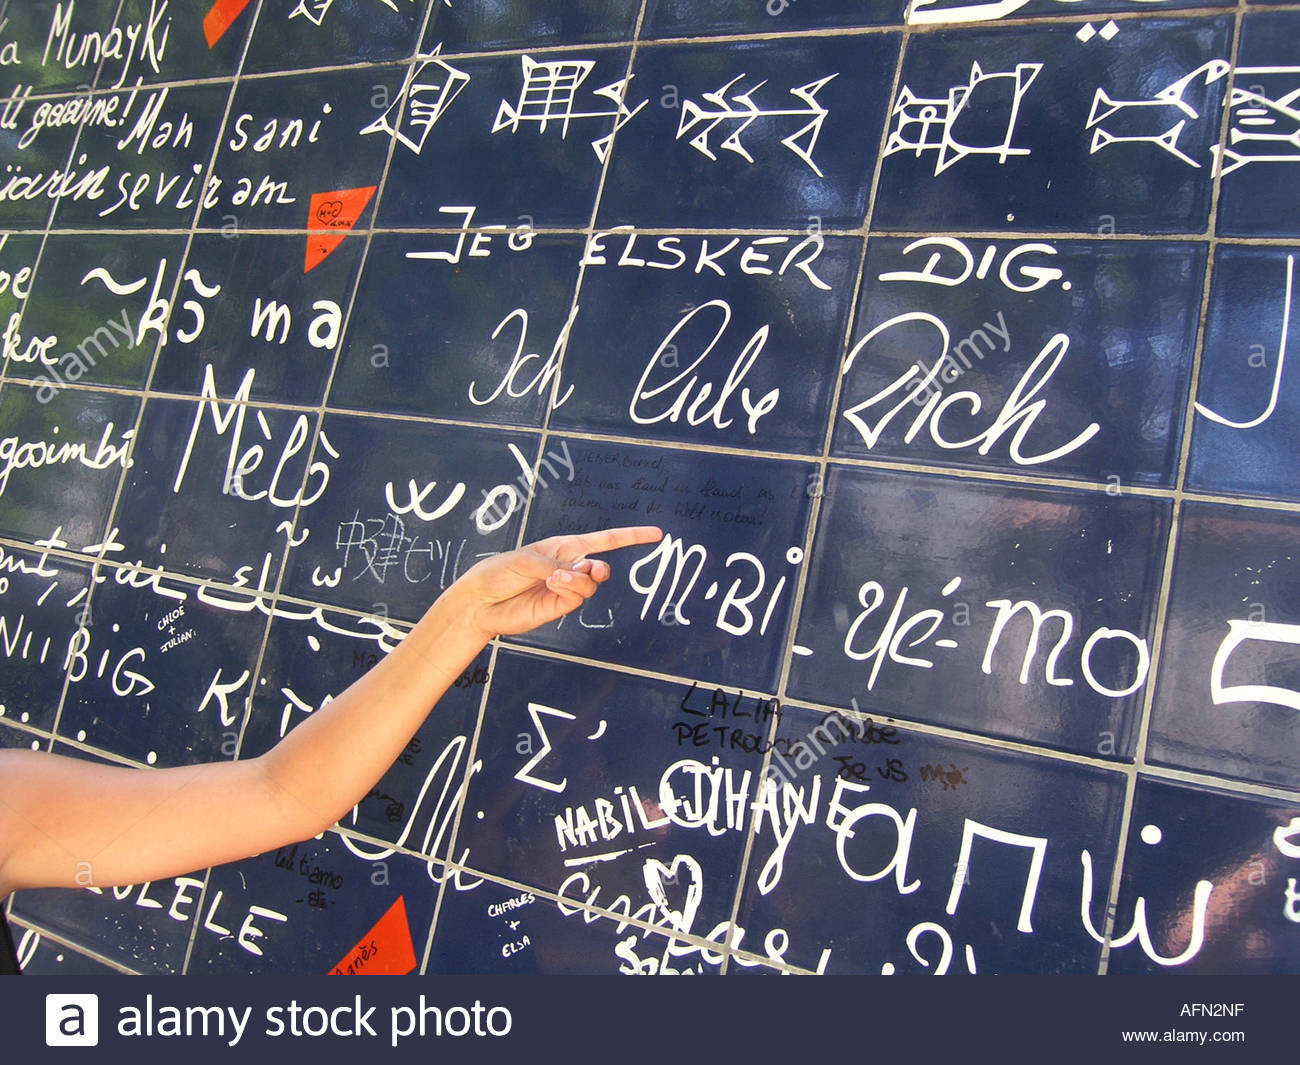 hand pointing at German text 'Ich liebe dich' on Parisian Love wall Place des Abbesses Paris France - Stock Image